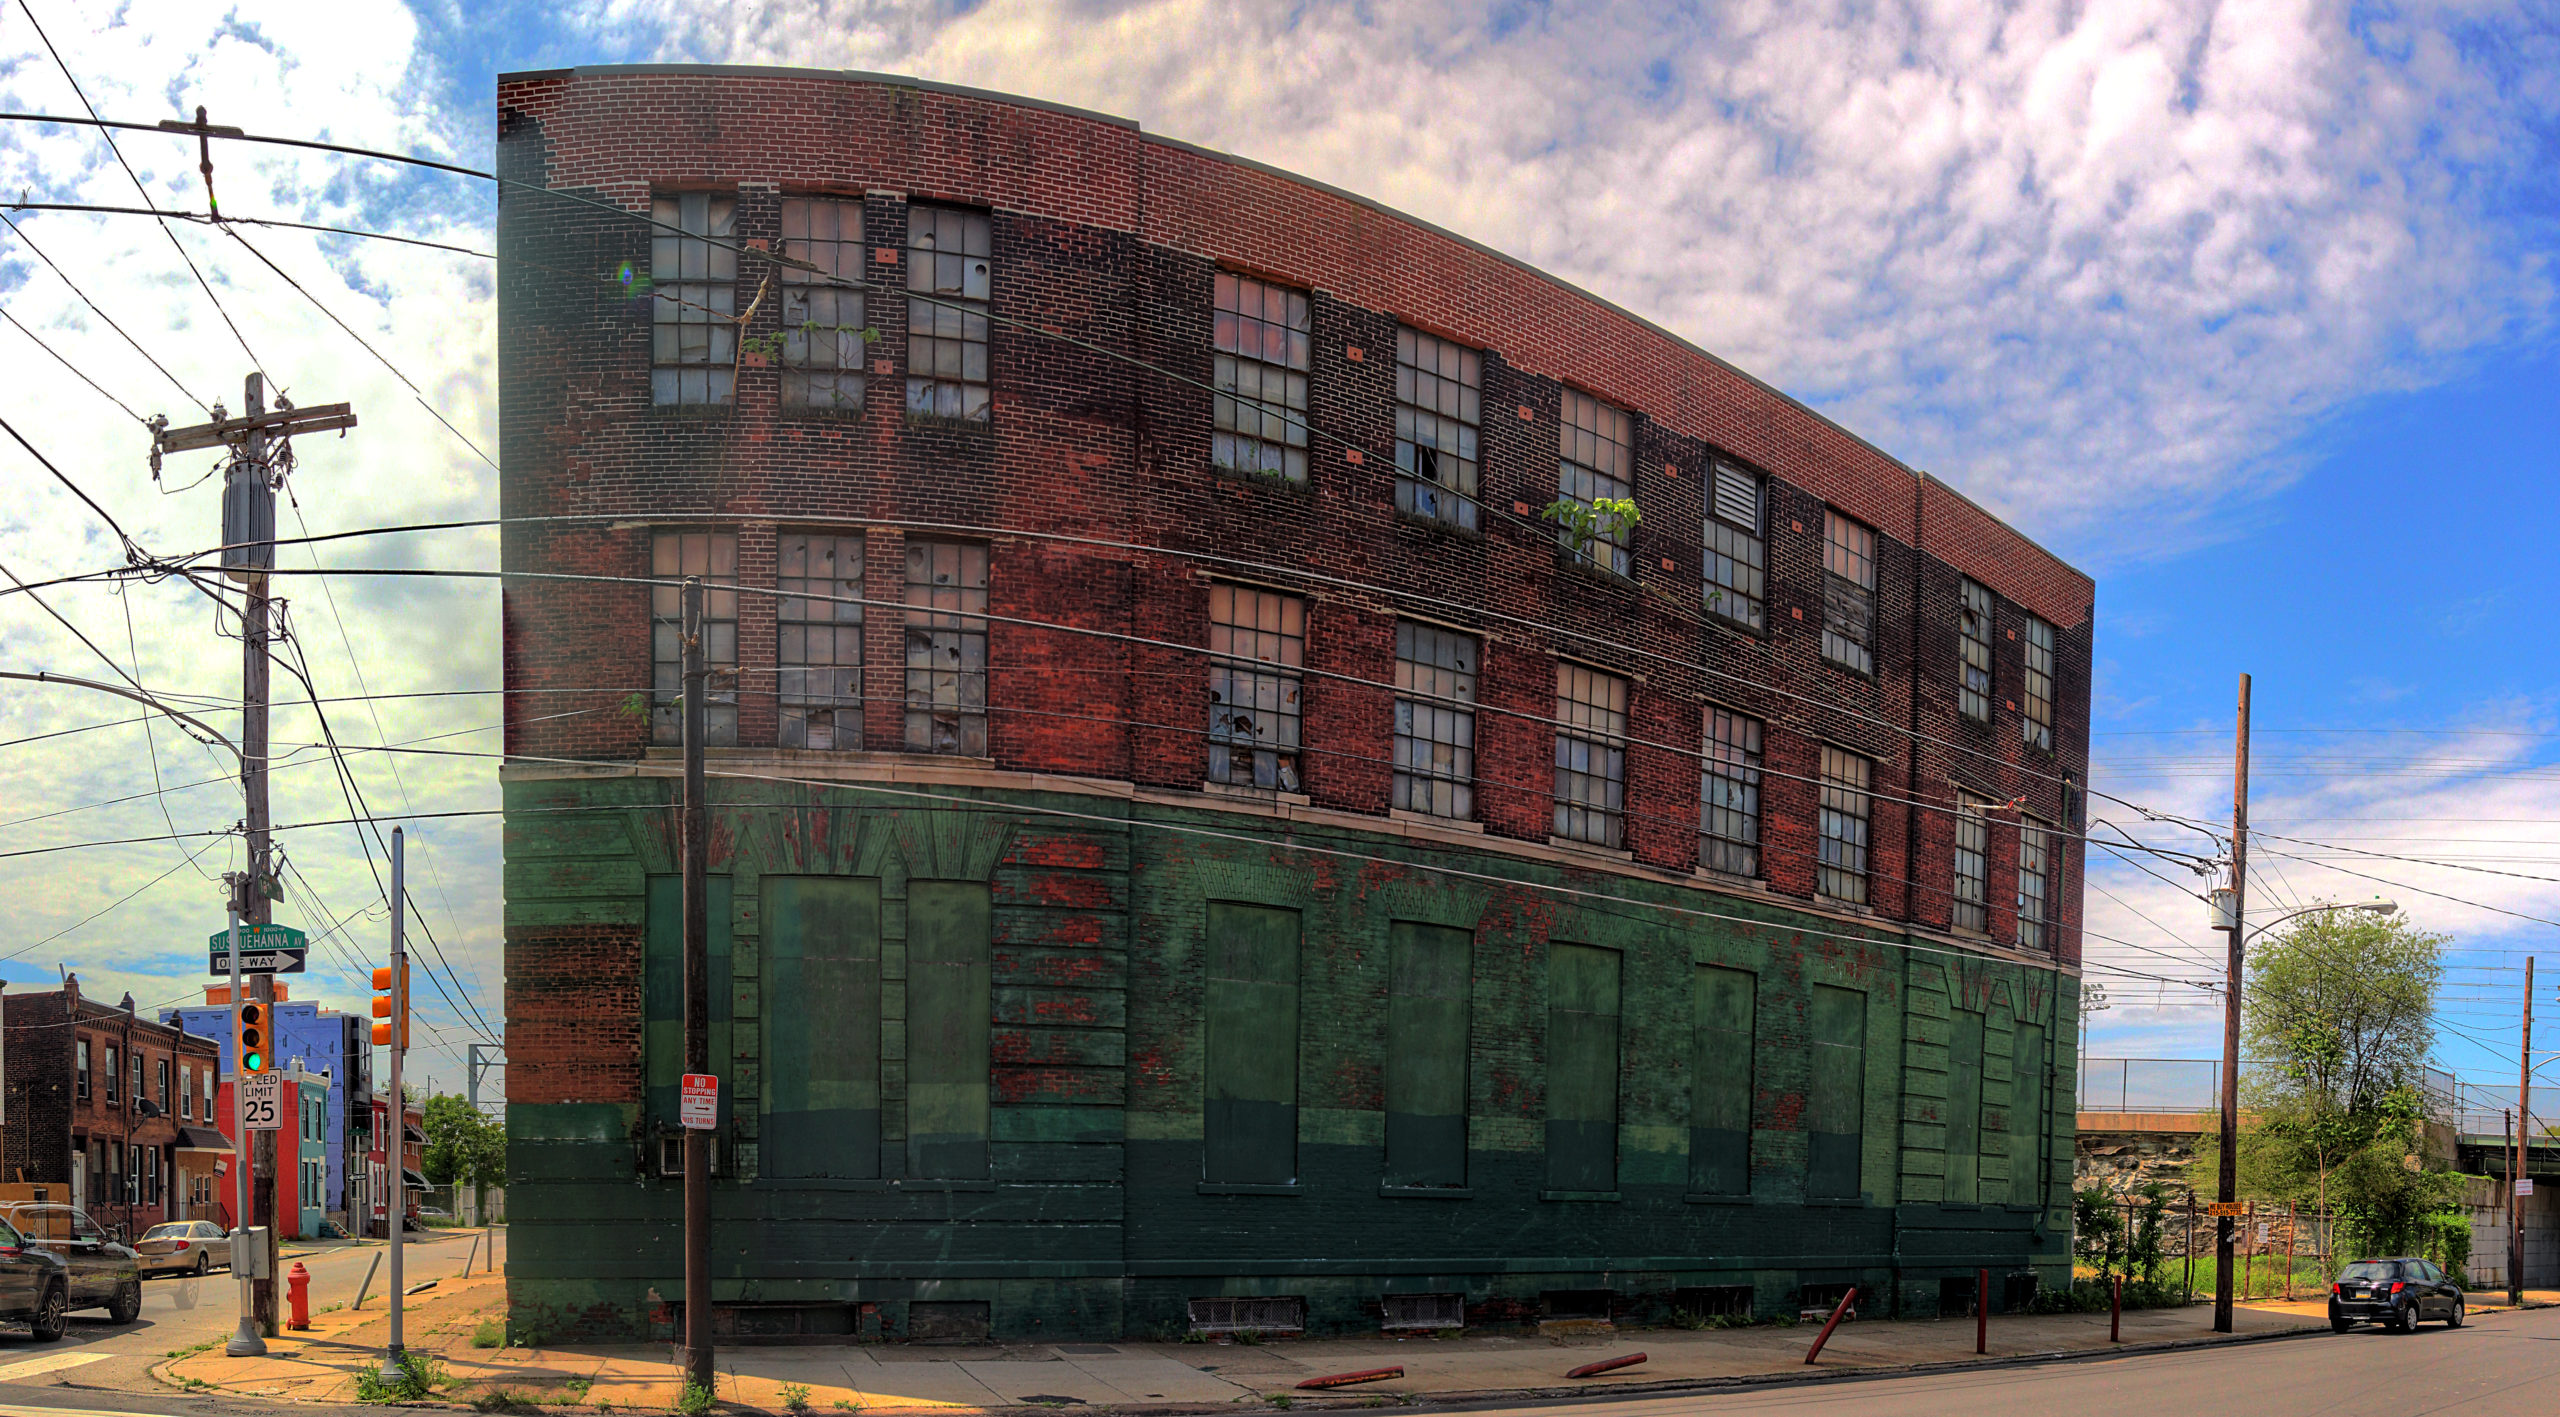 Globe Metal Manufacturing Co 2150 N 10th St Philadelphia, PA Copyright 2019, Bob Bruhin. All rights reserved.